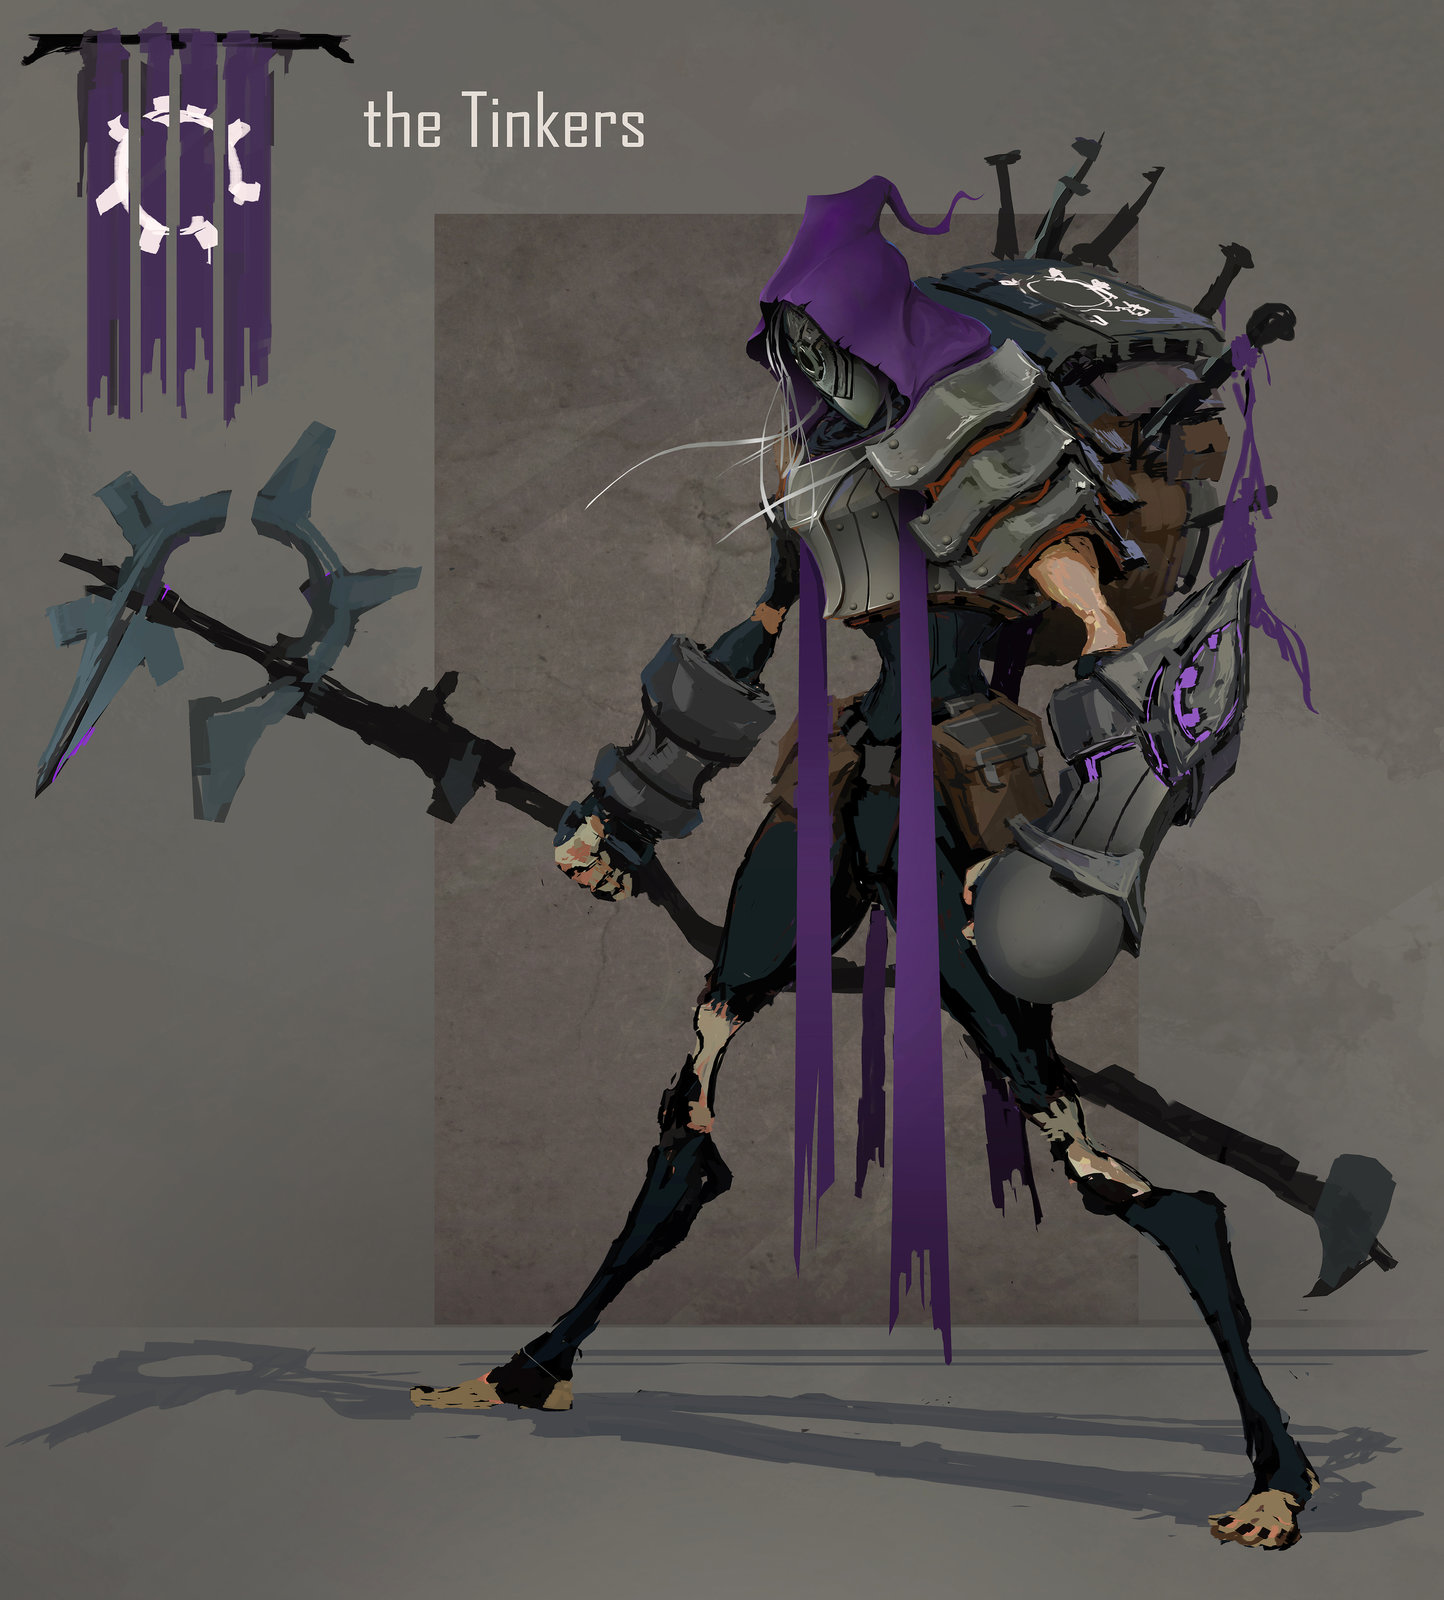 The Tinkers